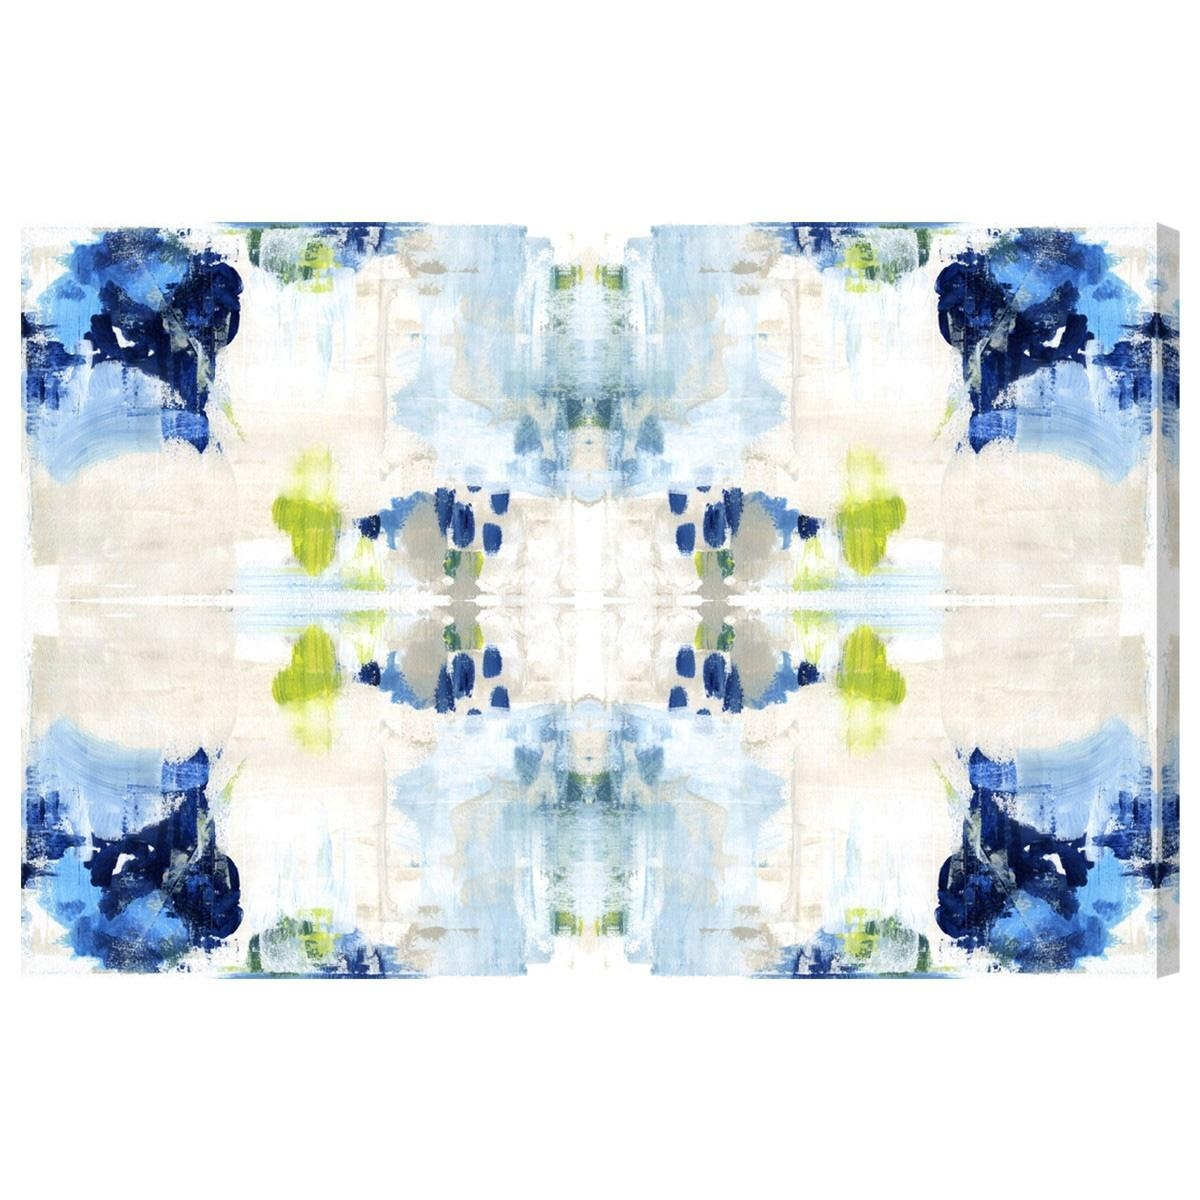 Oliver Gal Kaleidoscope Canvas Wall Art Intended For Kaleidoscope Wall Art (Image 14 of 20)